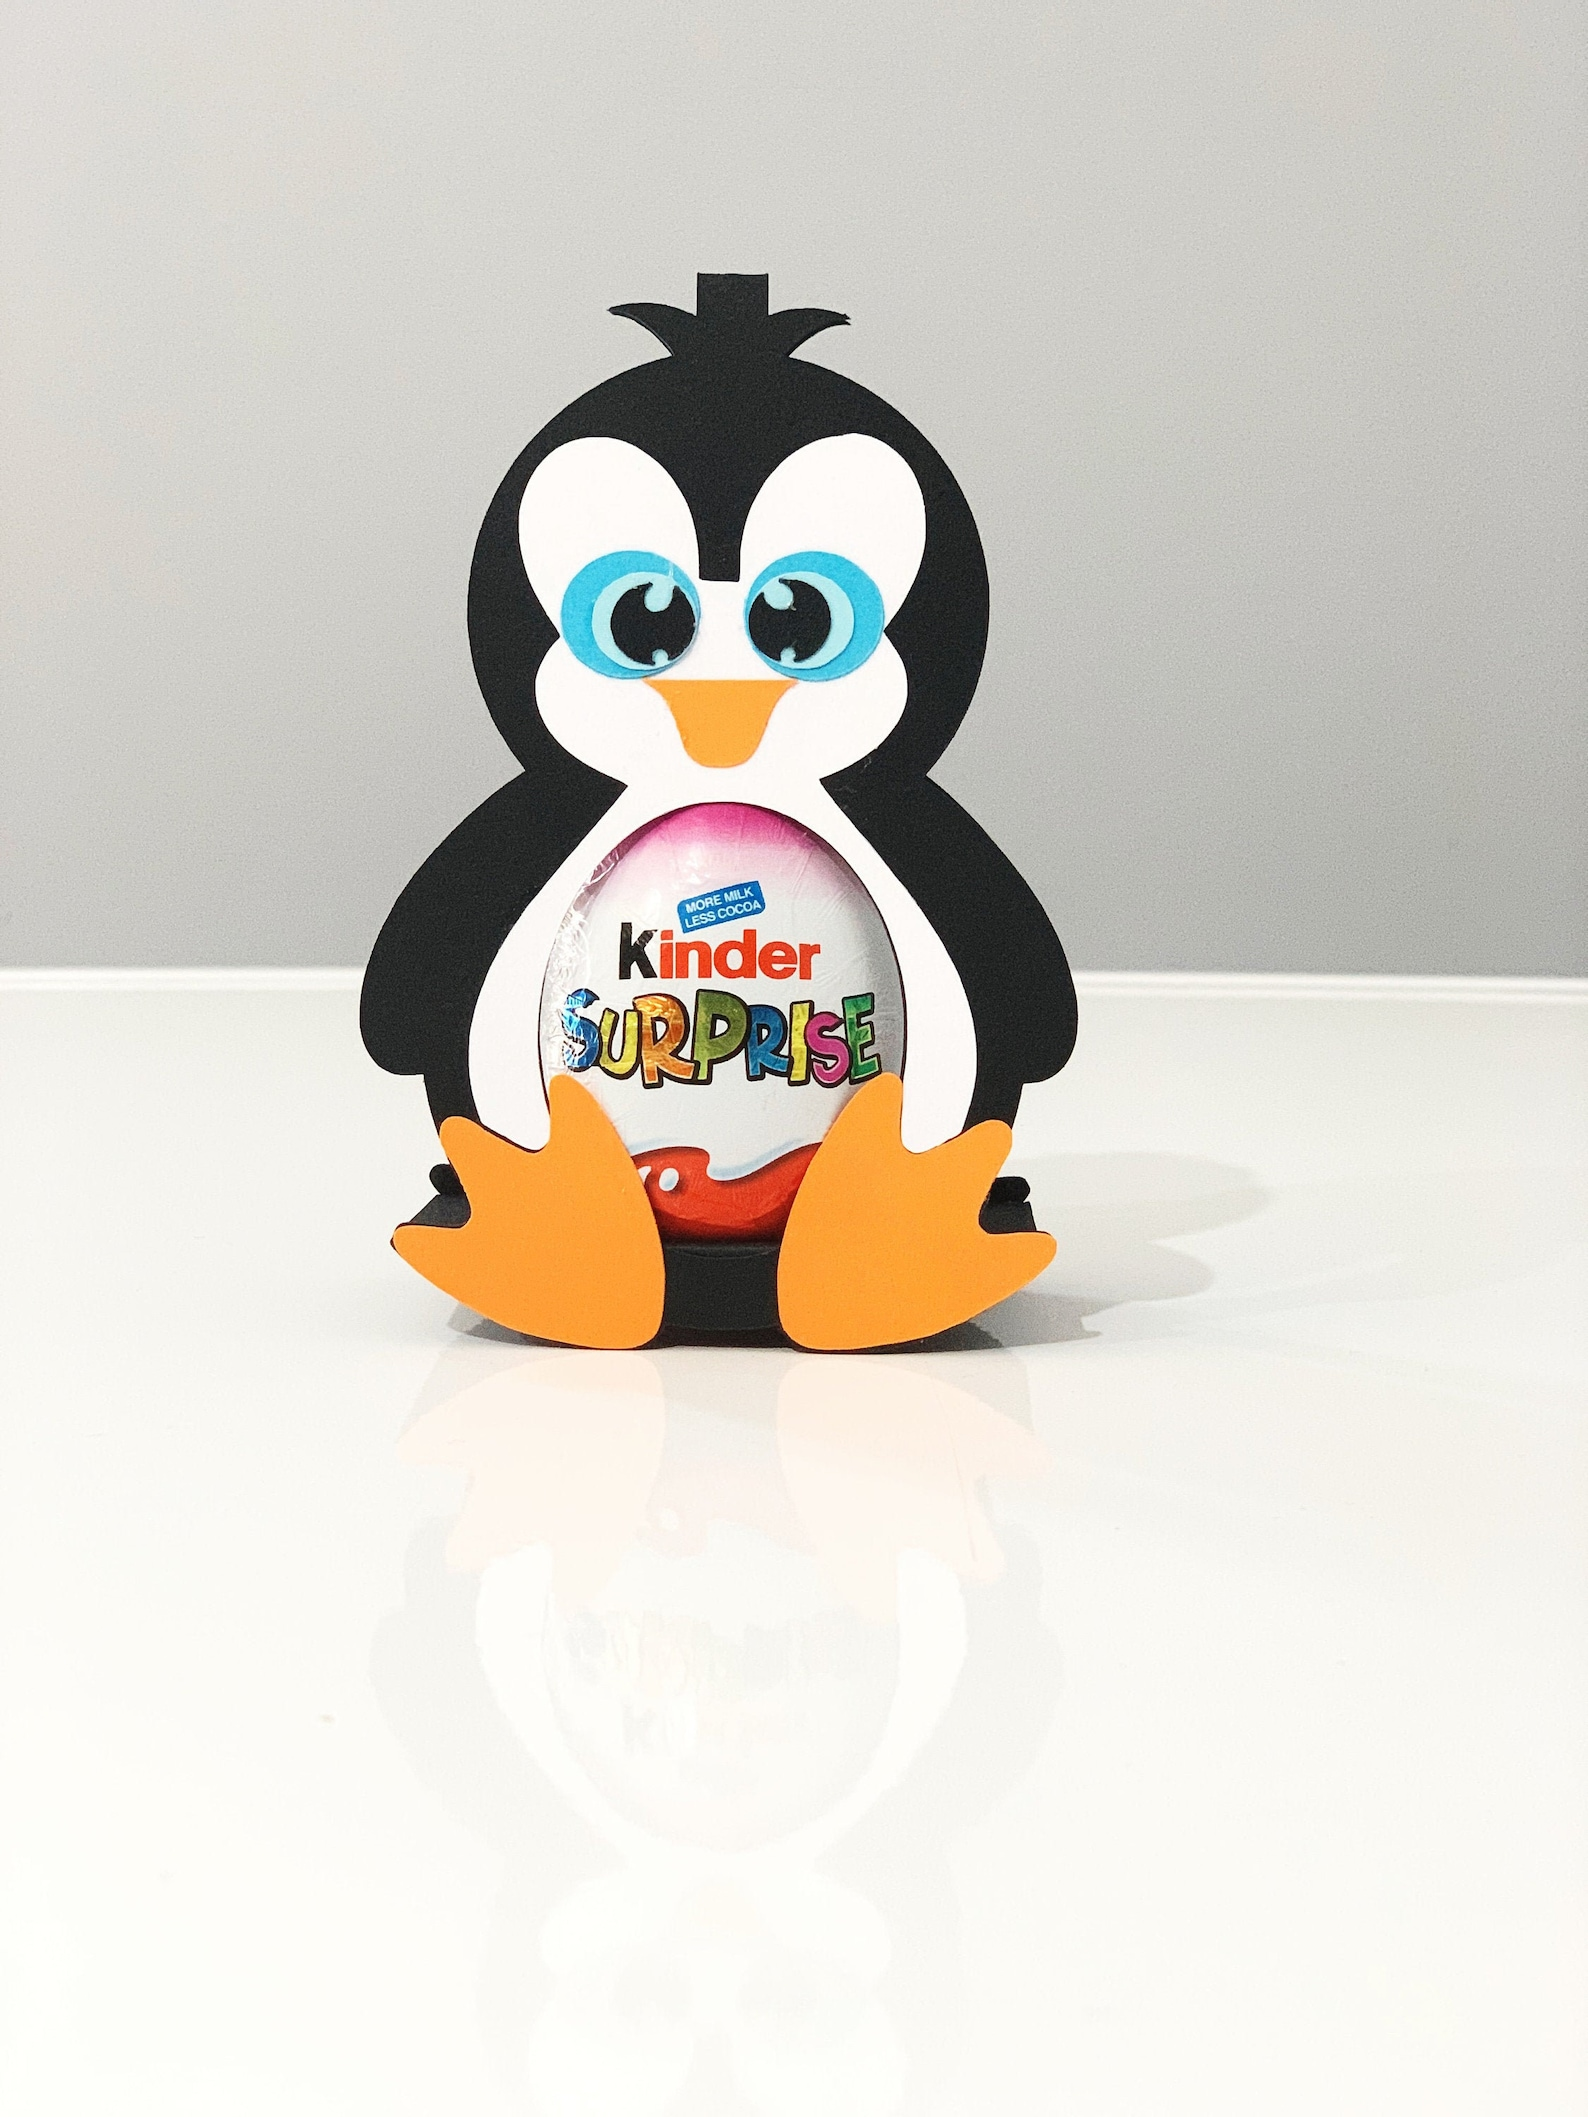 Penguin Kinder surprise chocolate holder with shut eyes and open eyes